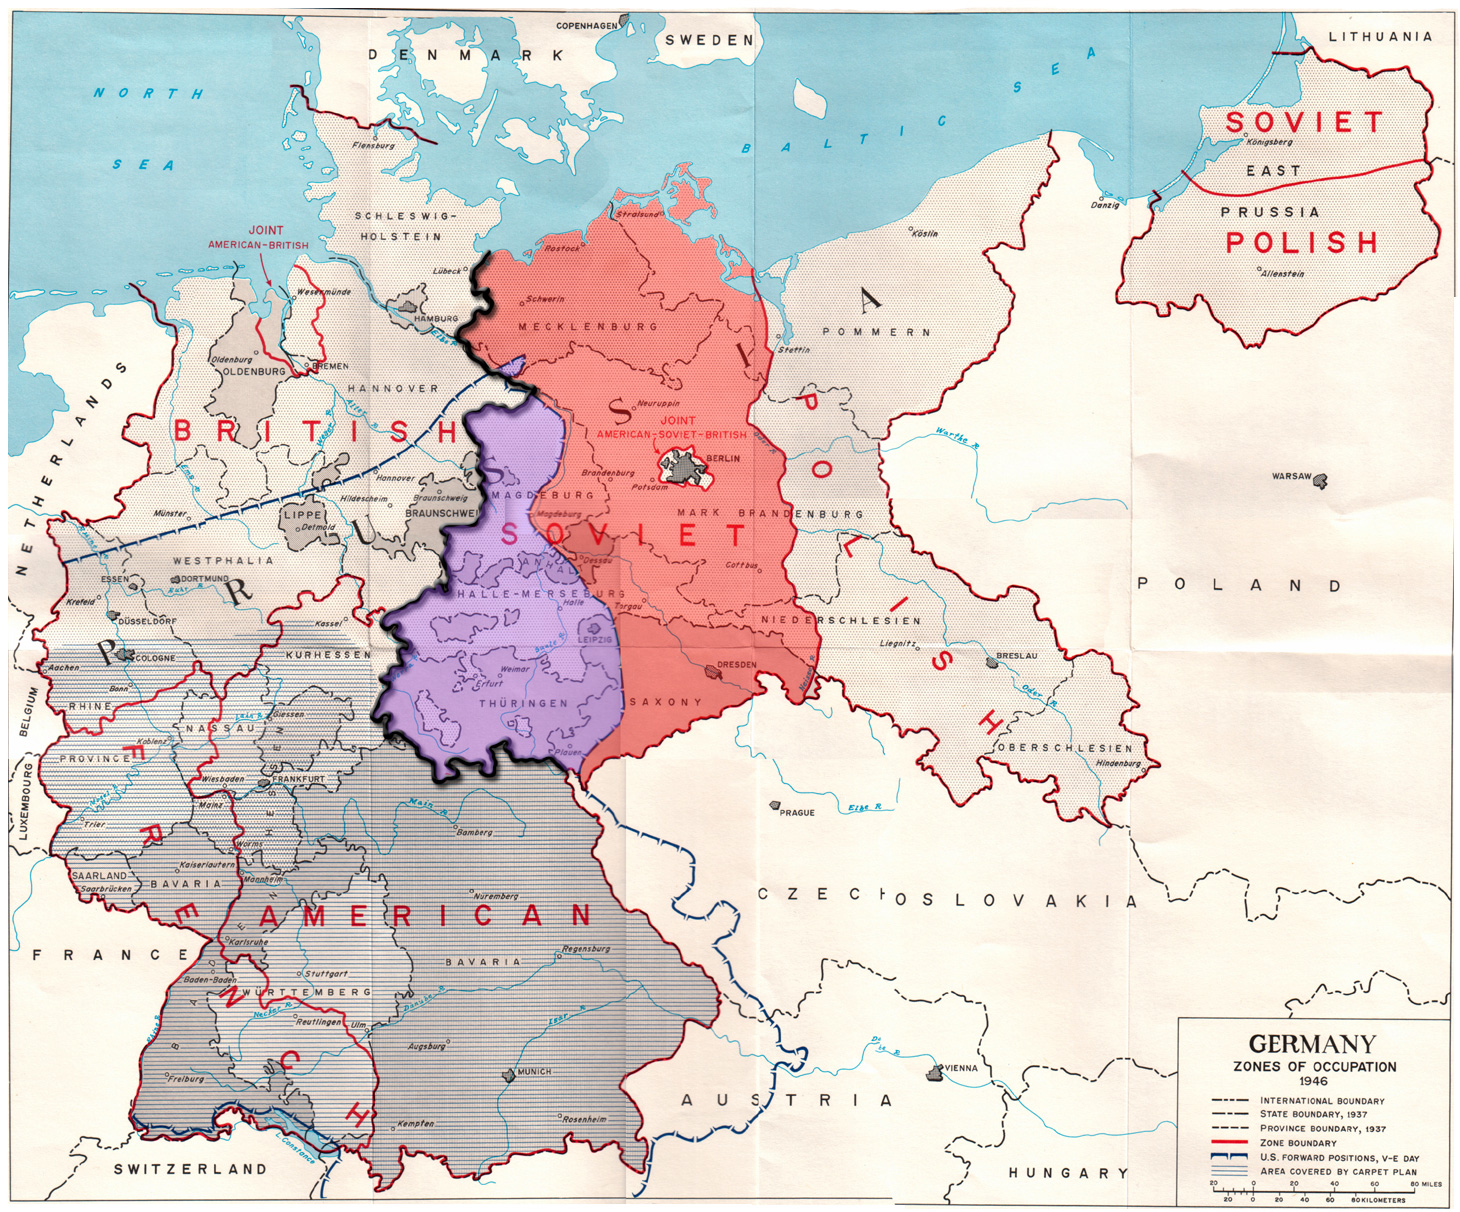 Germany: Zones of occupation (1946)